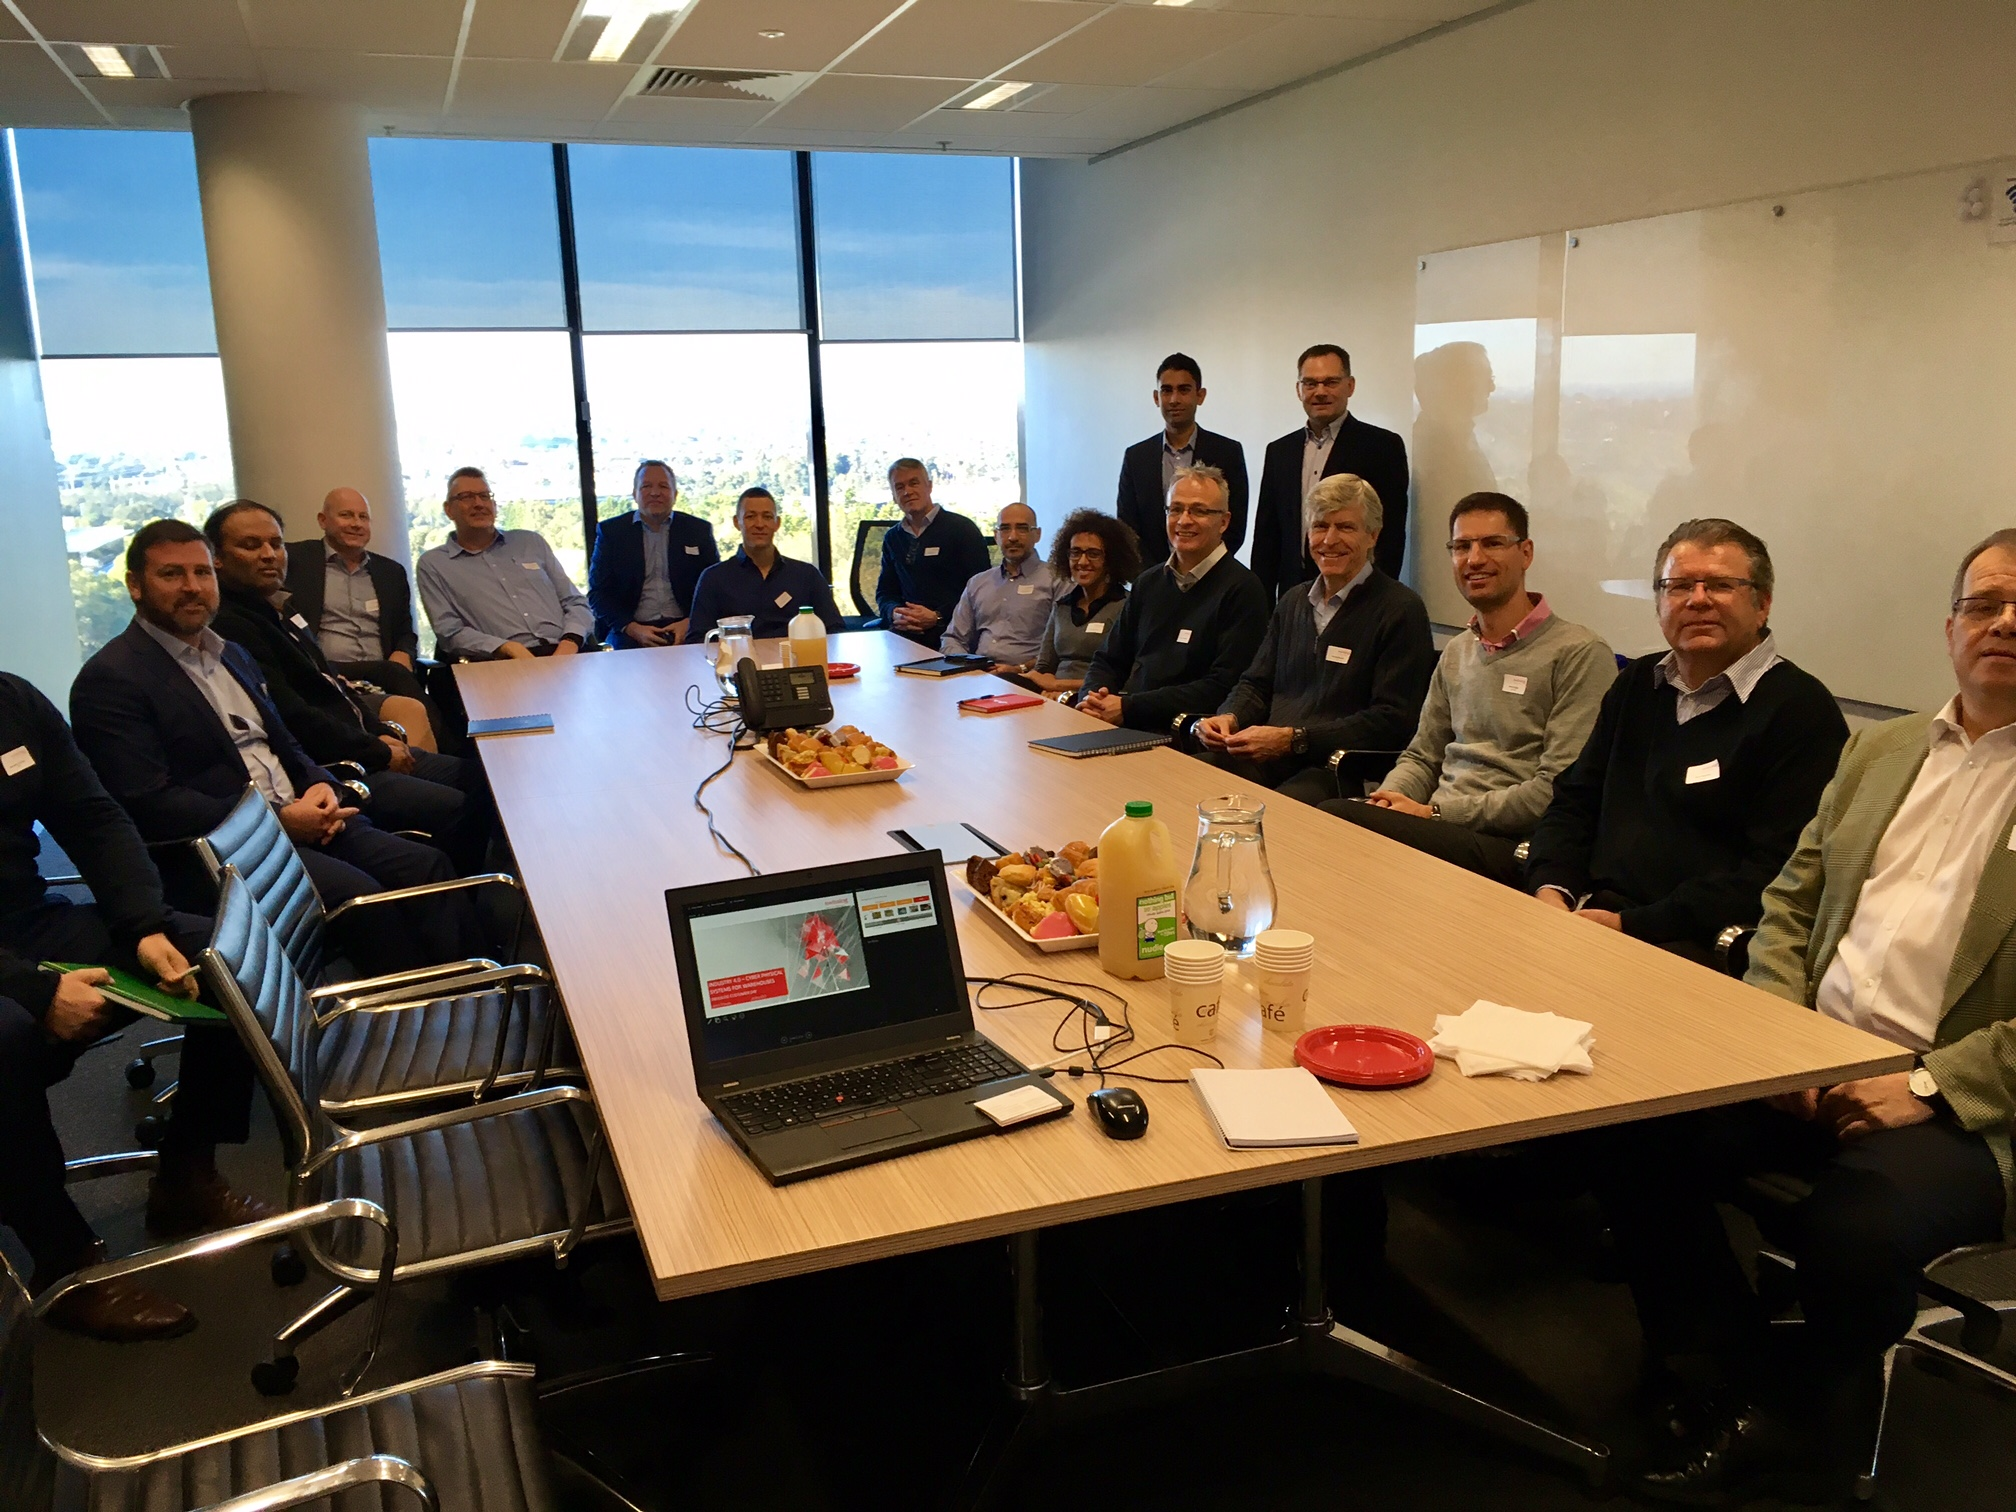 Swisslog ANZ Customer Day_5.6.17.jpg